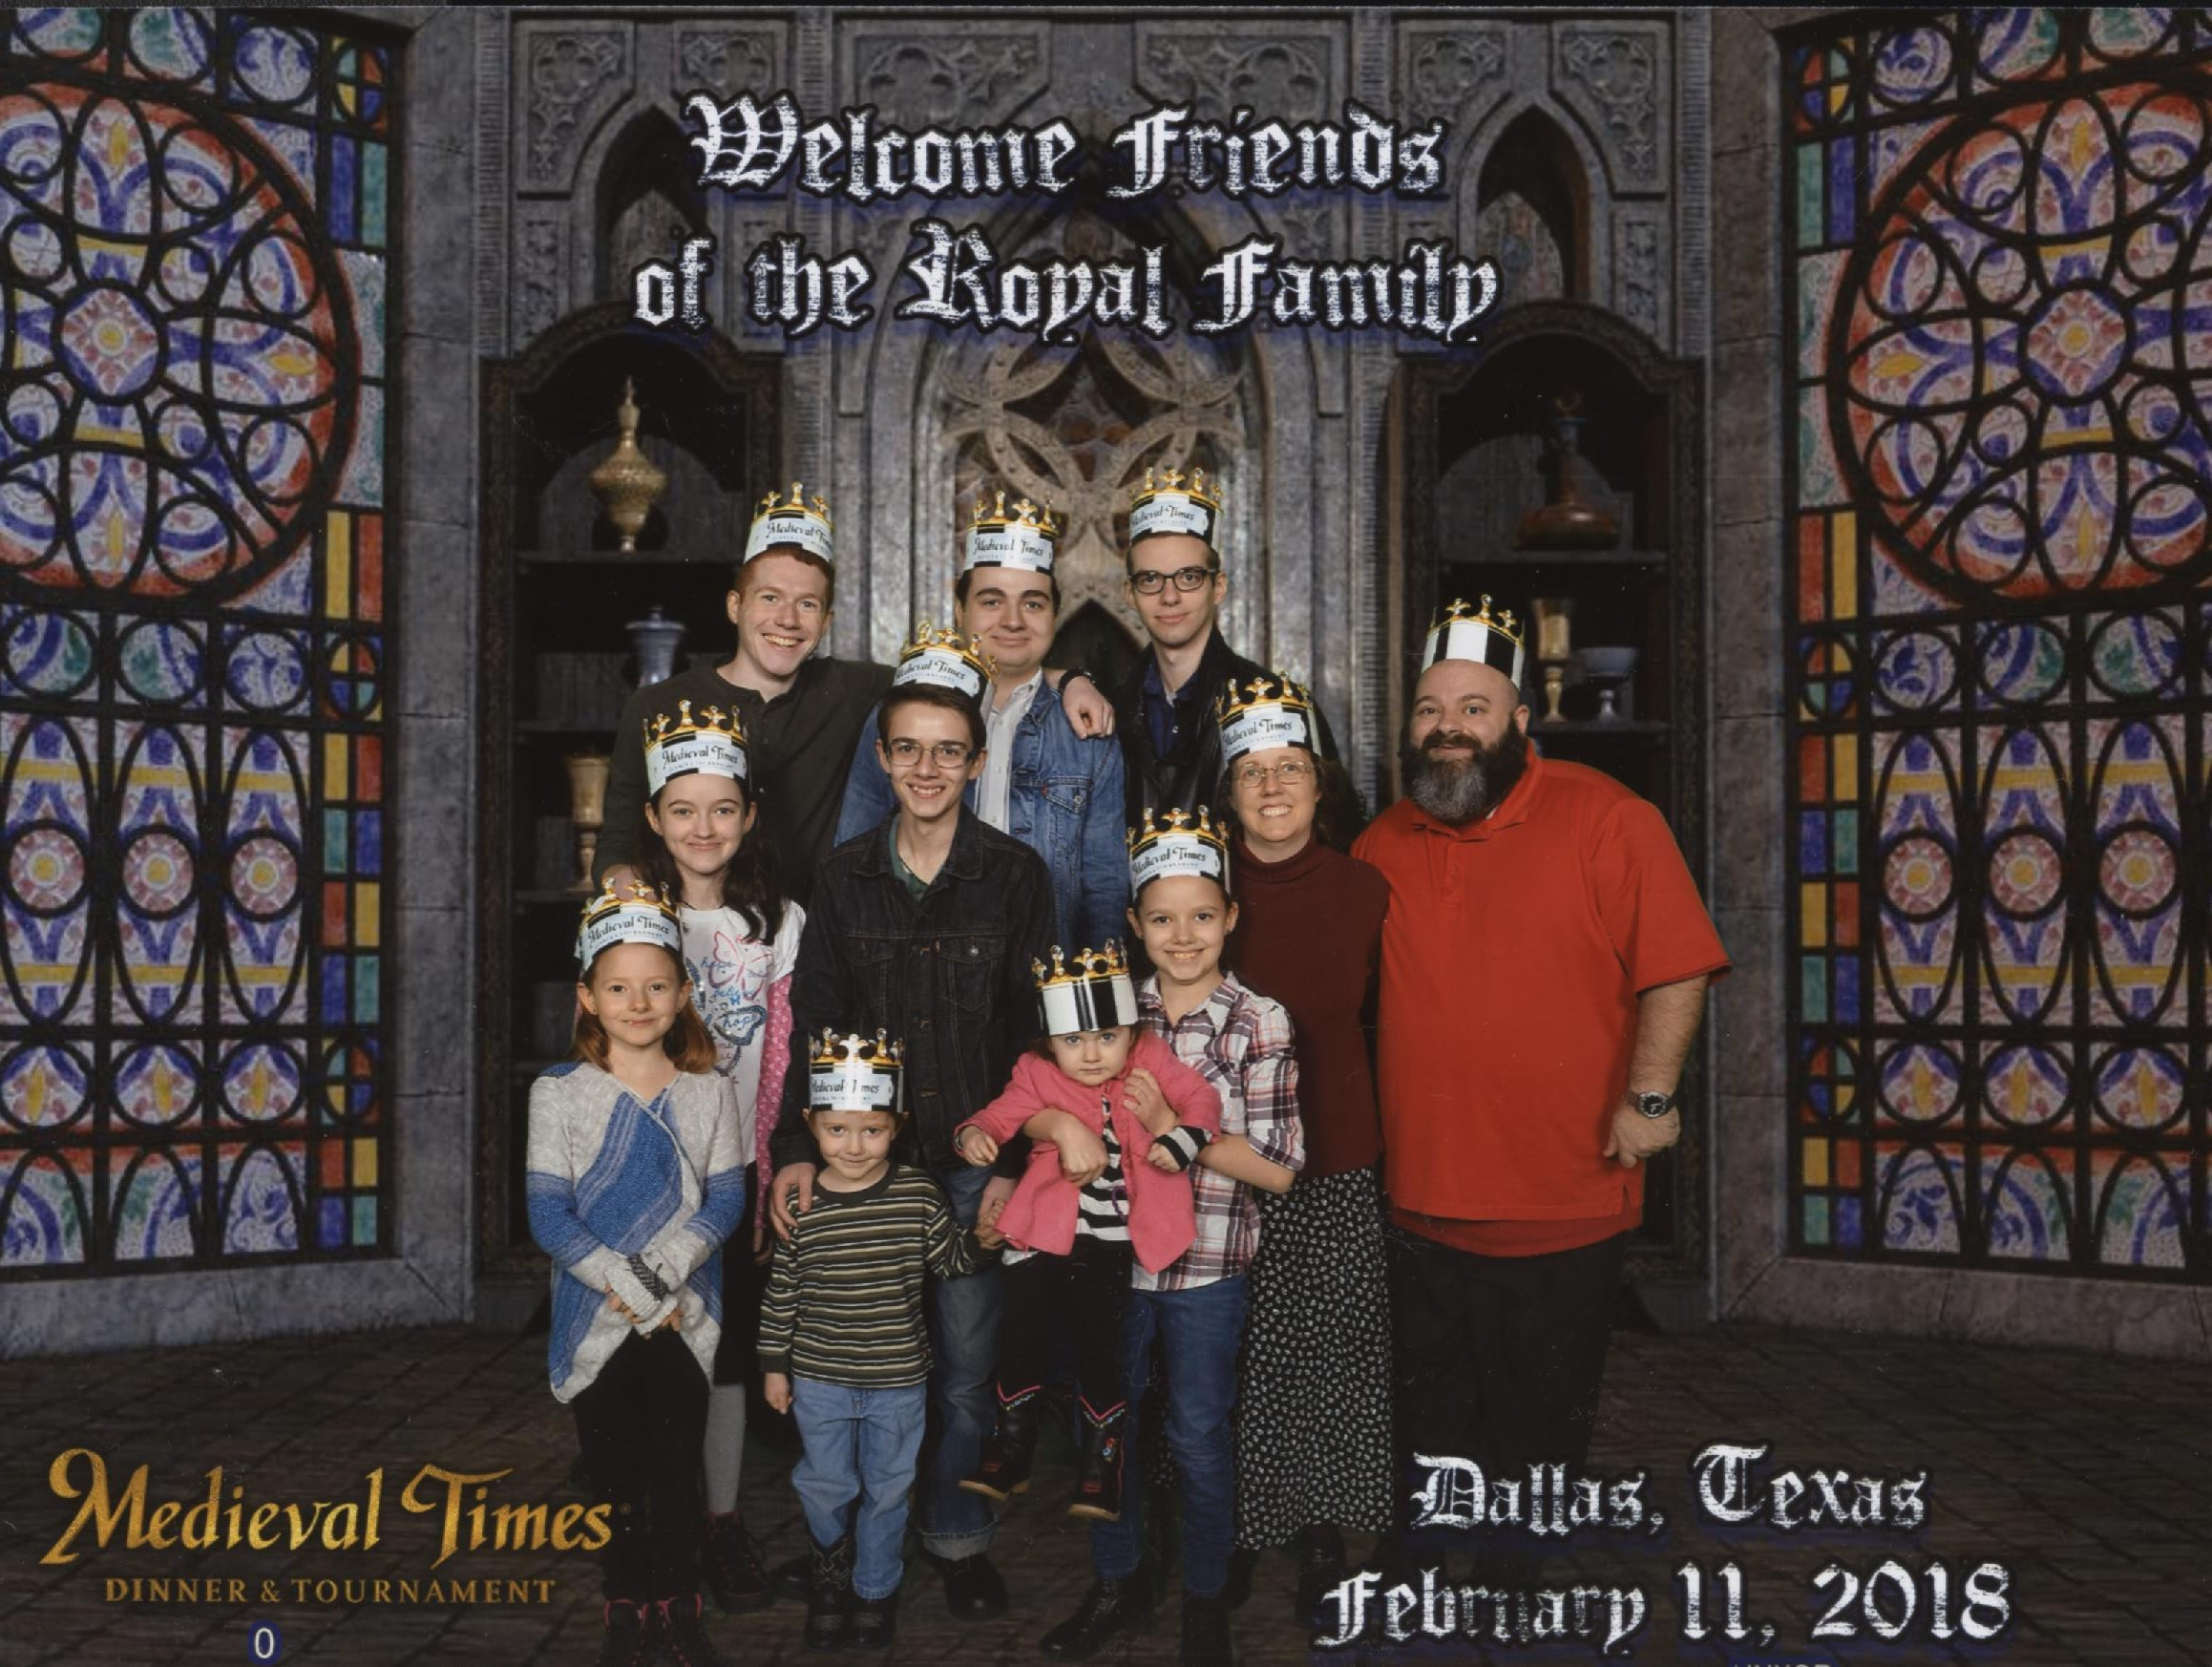 Medieval Times Stained Glass Windows Background. Top Text: 'Welcome friends of the Royal family.' Catie, Jacinta, Michael, Becket, Cross, Nunzio, Bernie holding Cecilia, Joseph, Nunzio, Jen and Justin! Bottom Text: 'Dallas, Texas February 11, 2018'